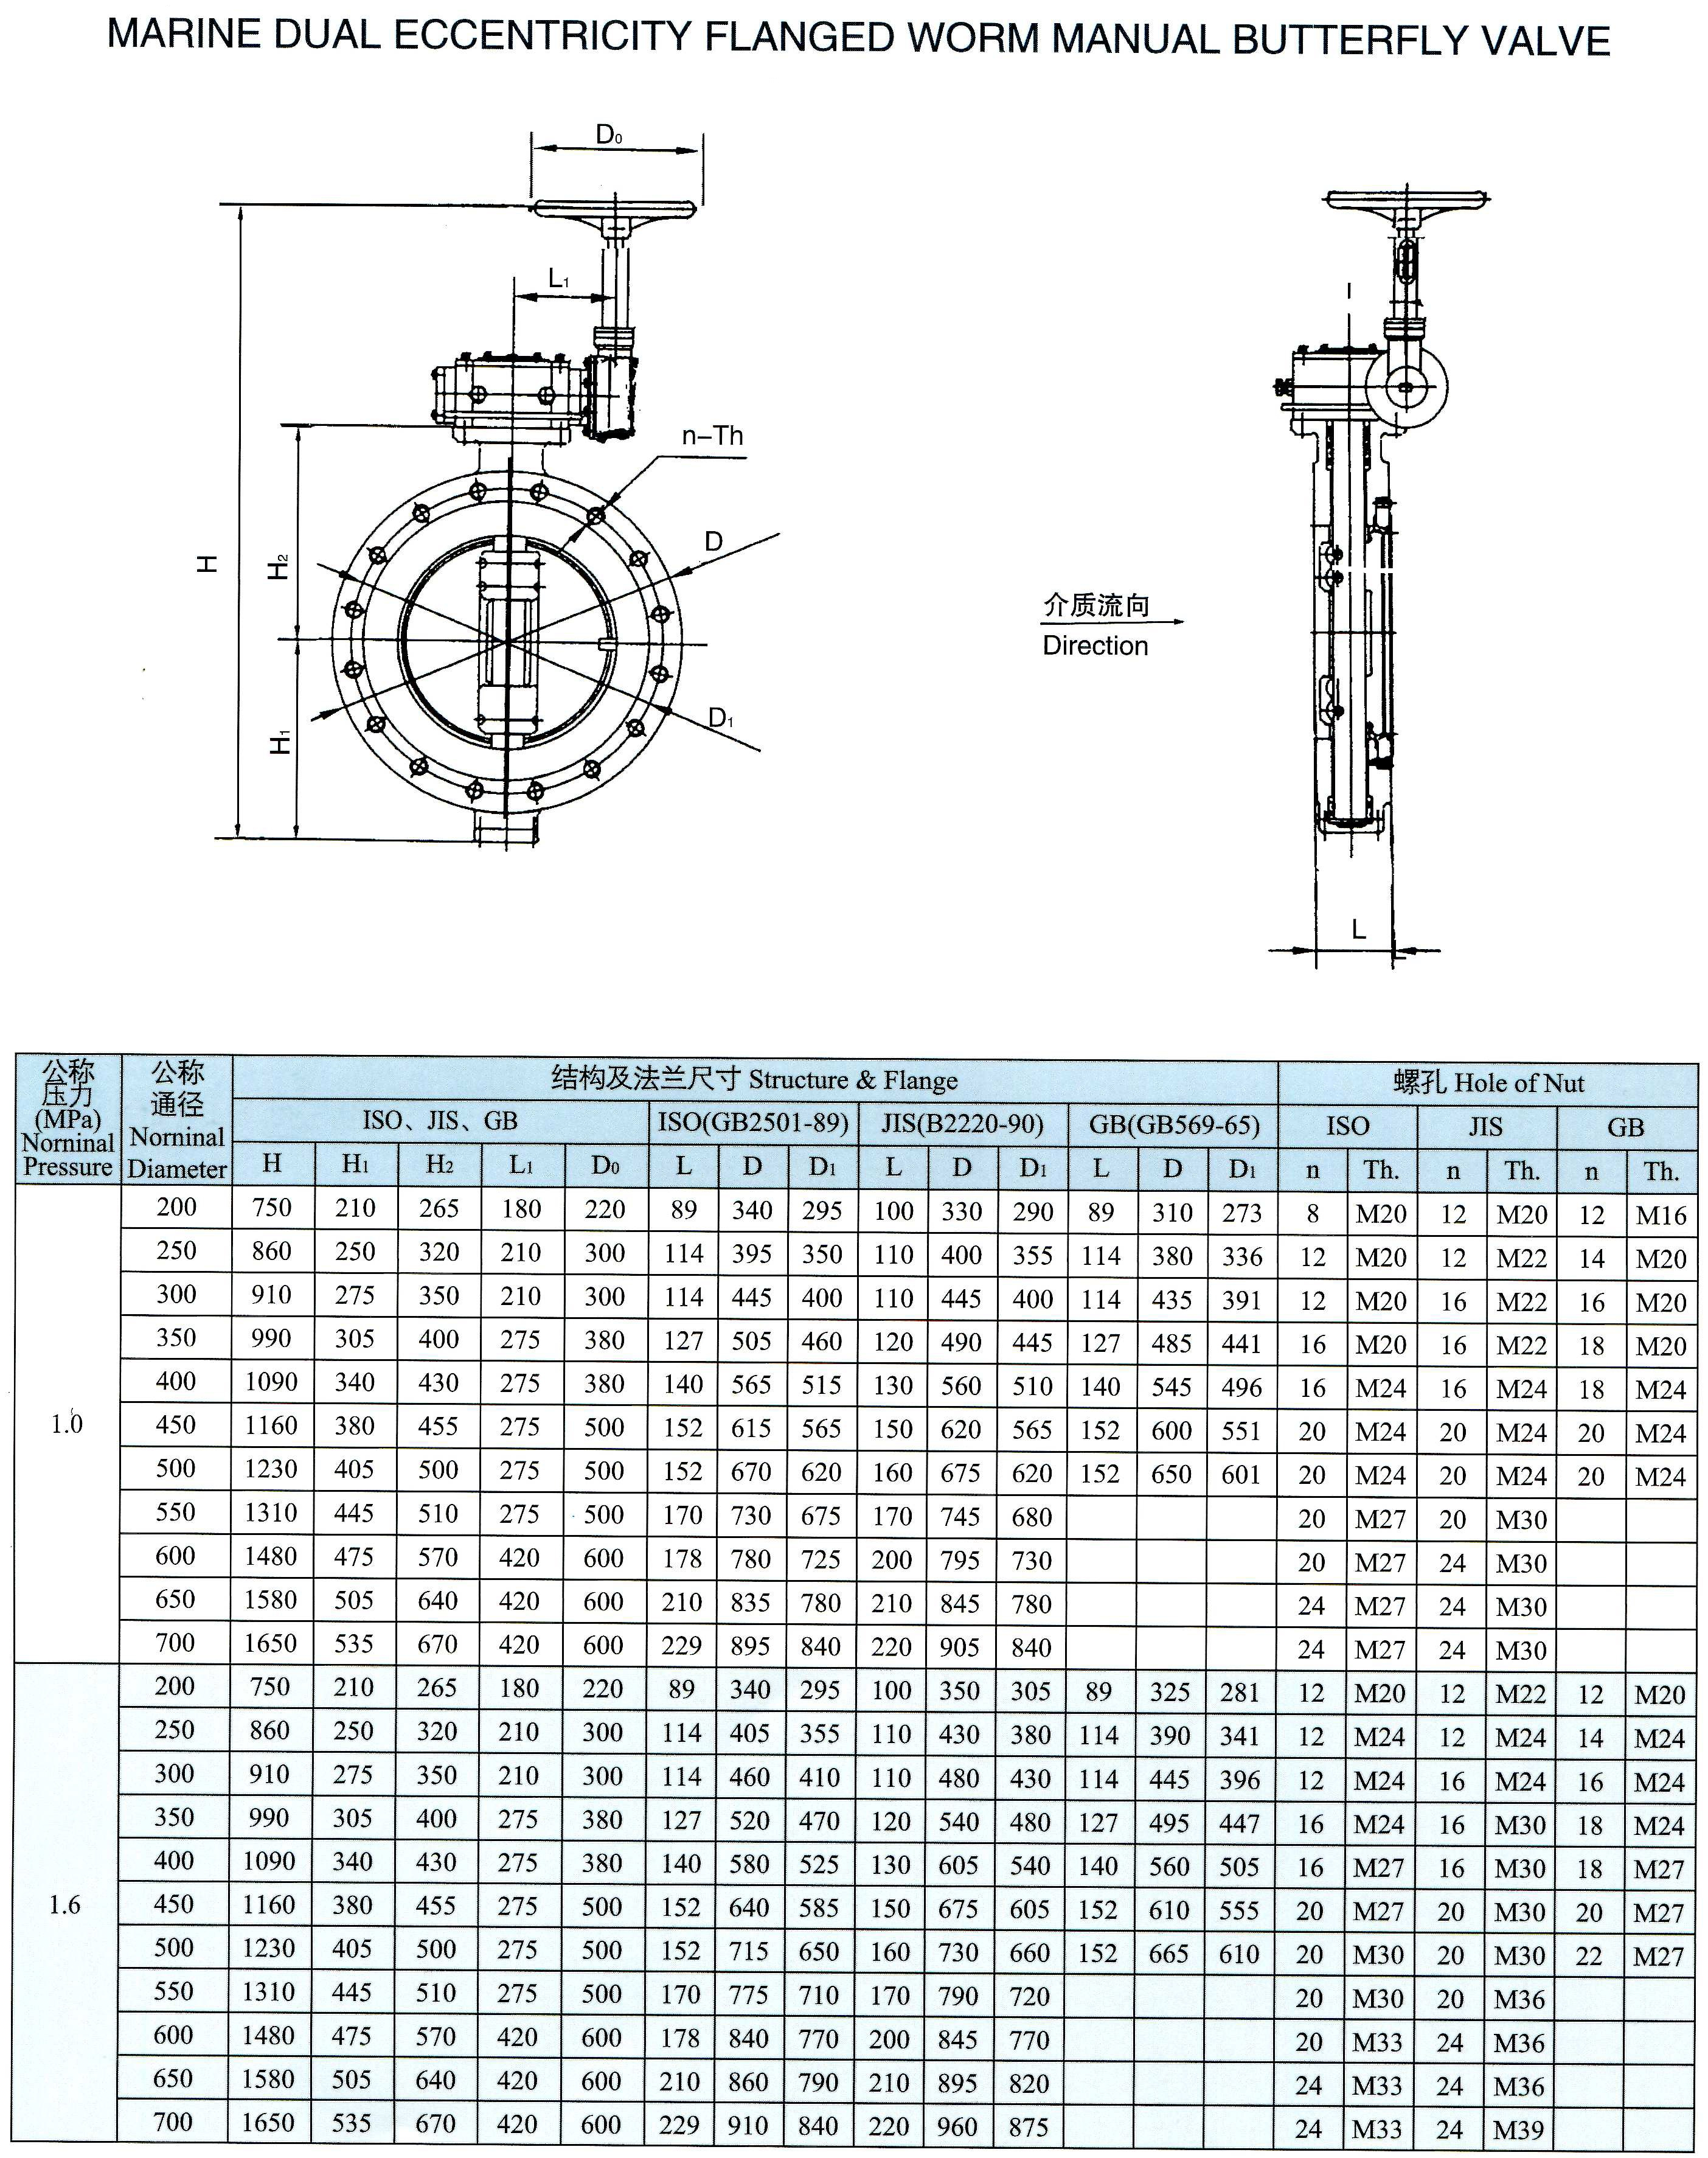 marine dual eccentricity flanged worm manual butterfly valve(FSGS)